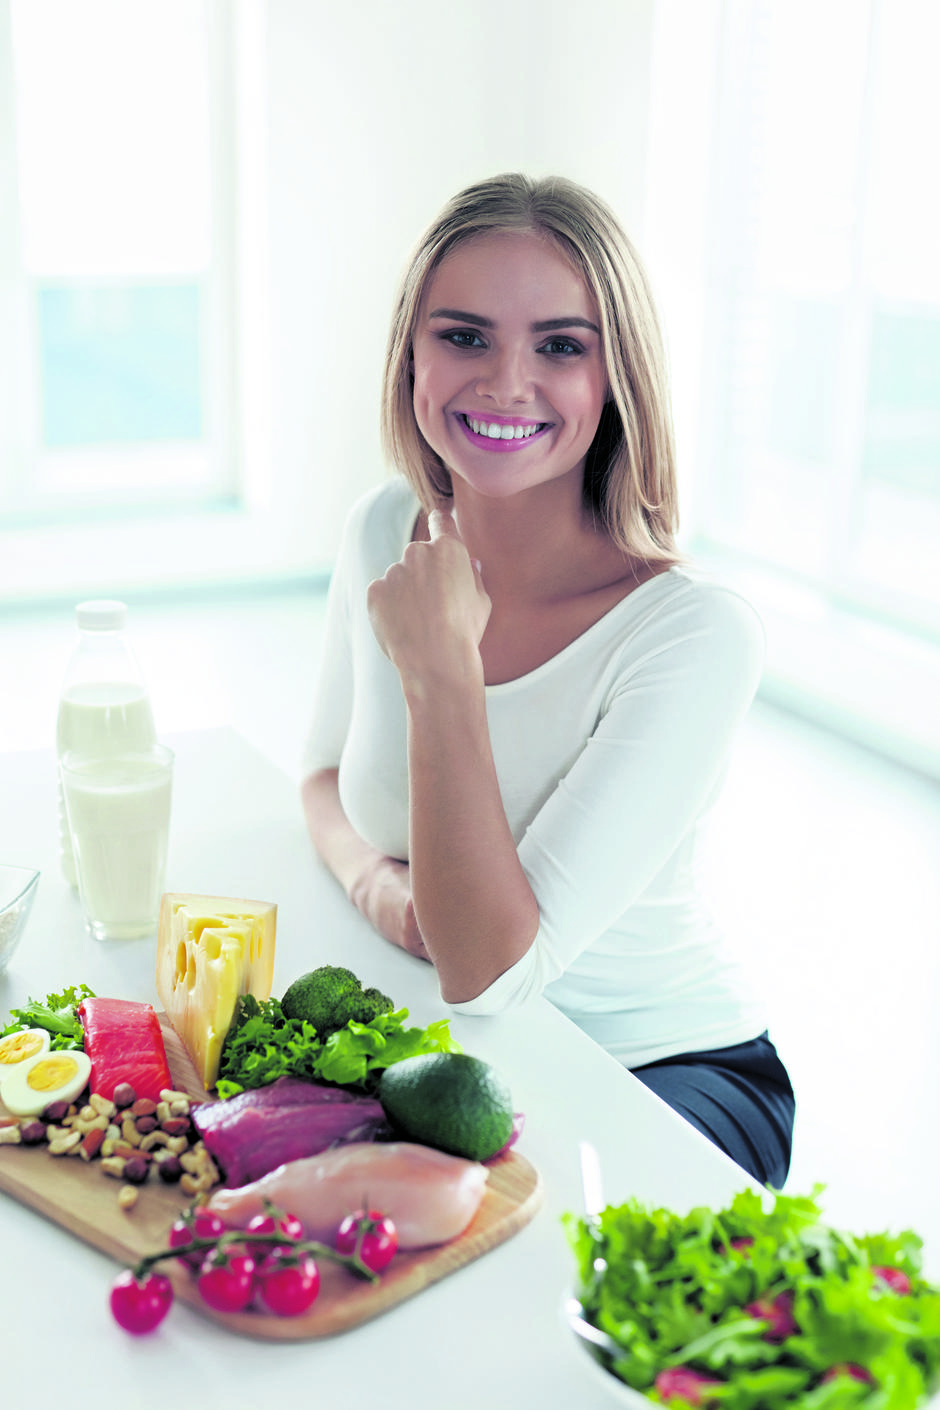 Healthy Food. Beautiful Woman With Food Products On Table | Autor: Ihor Pukhnatyy